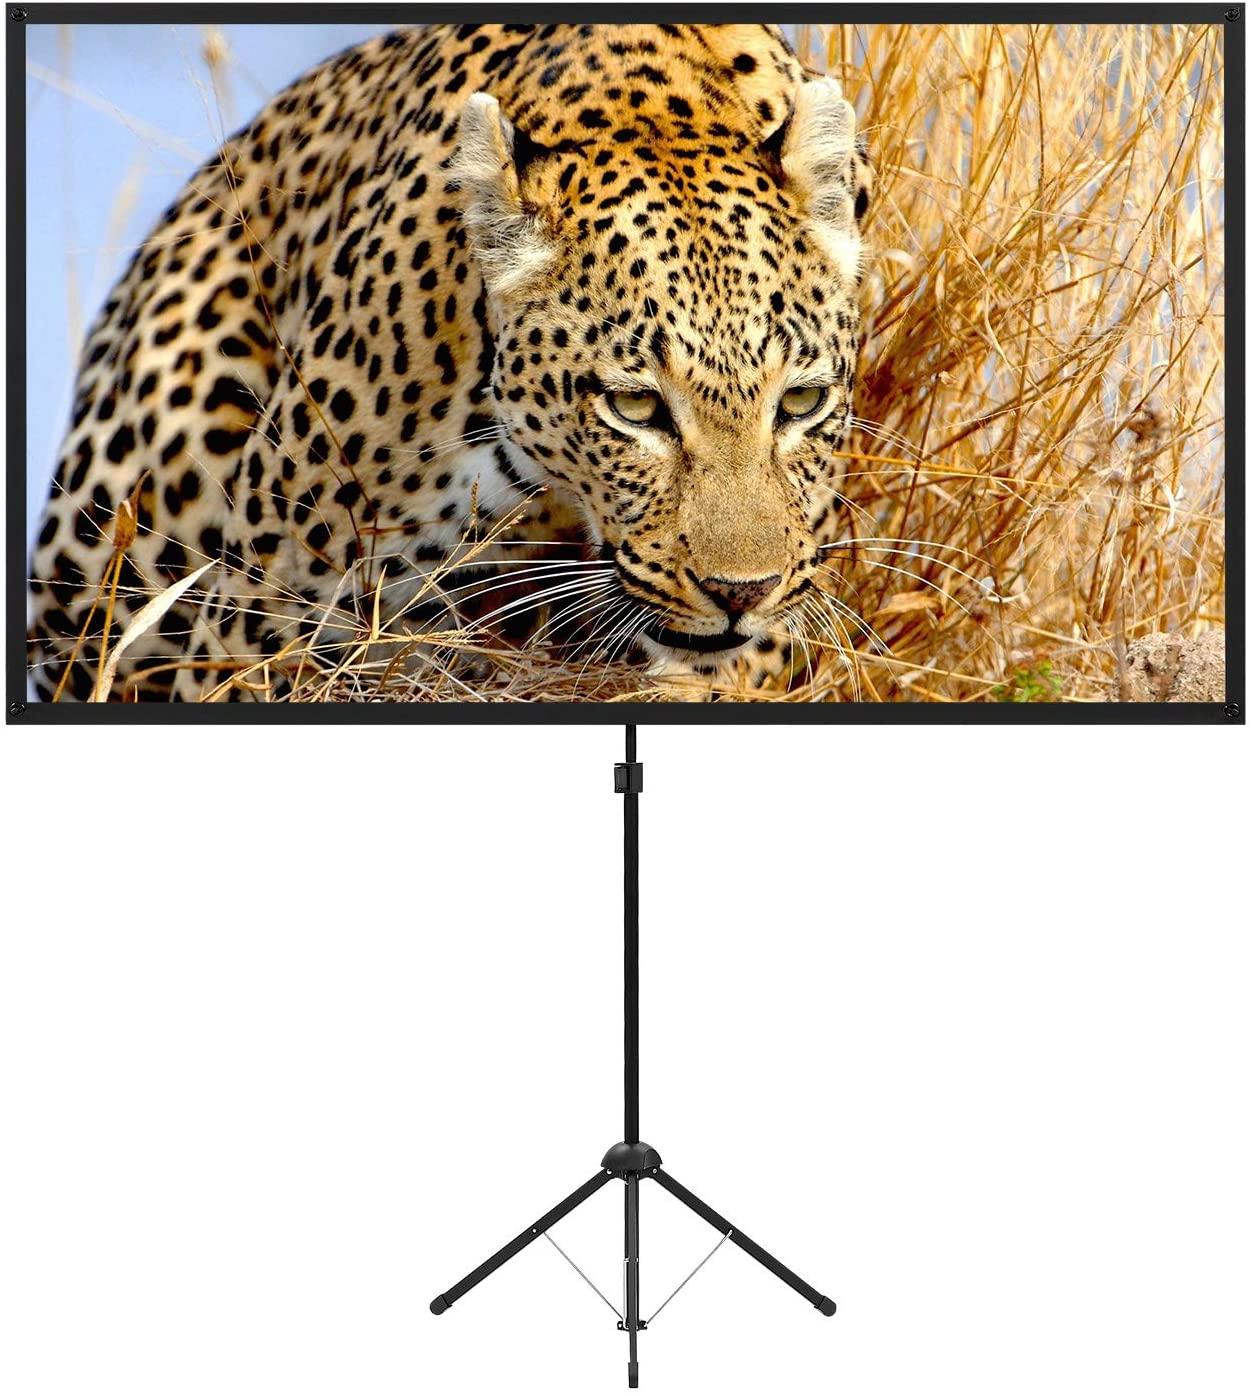 Portable Projector Screen with Stand Outdoor Movie 80 Popular Indianapolis Mall I